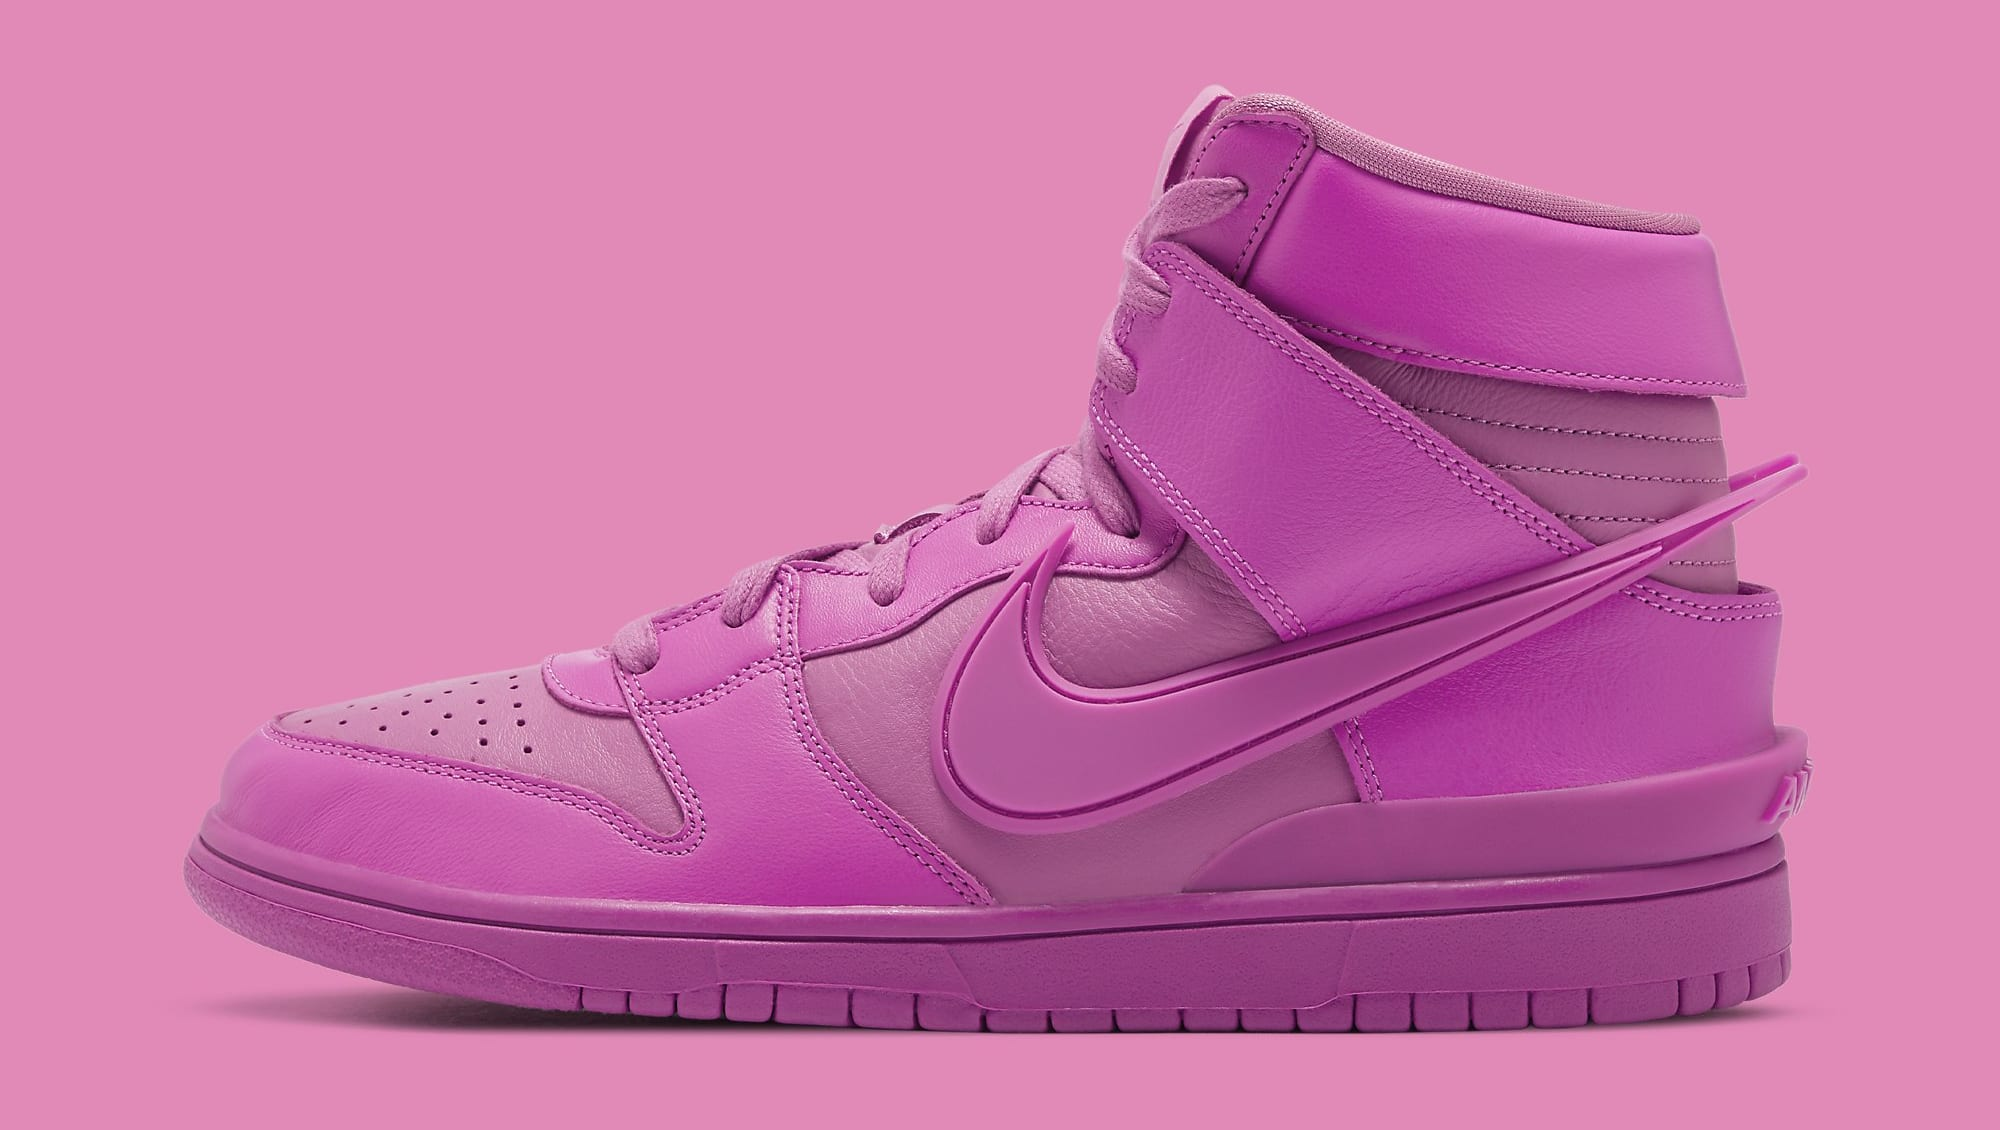 Ambush x Nike Dunk High 'Cosmic Fuchsia' CU7544-600 Lateral